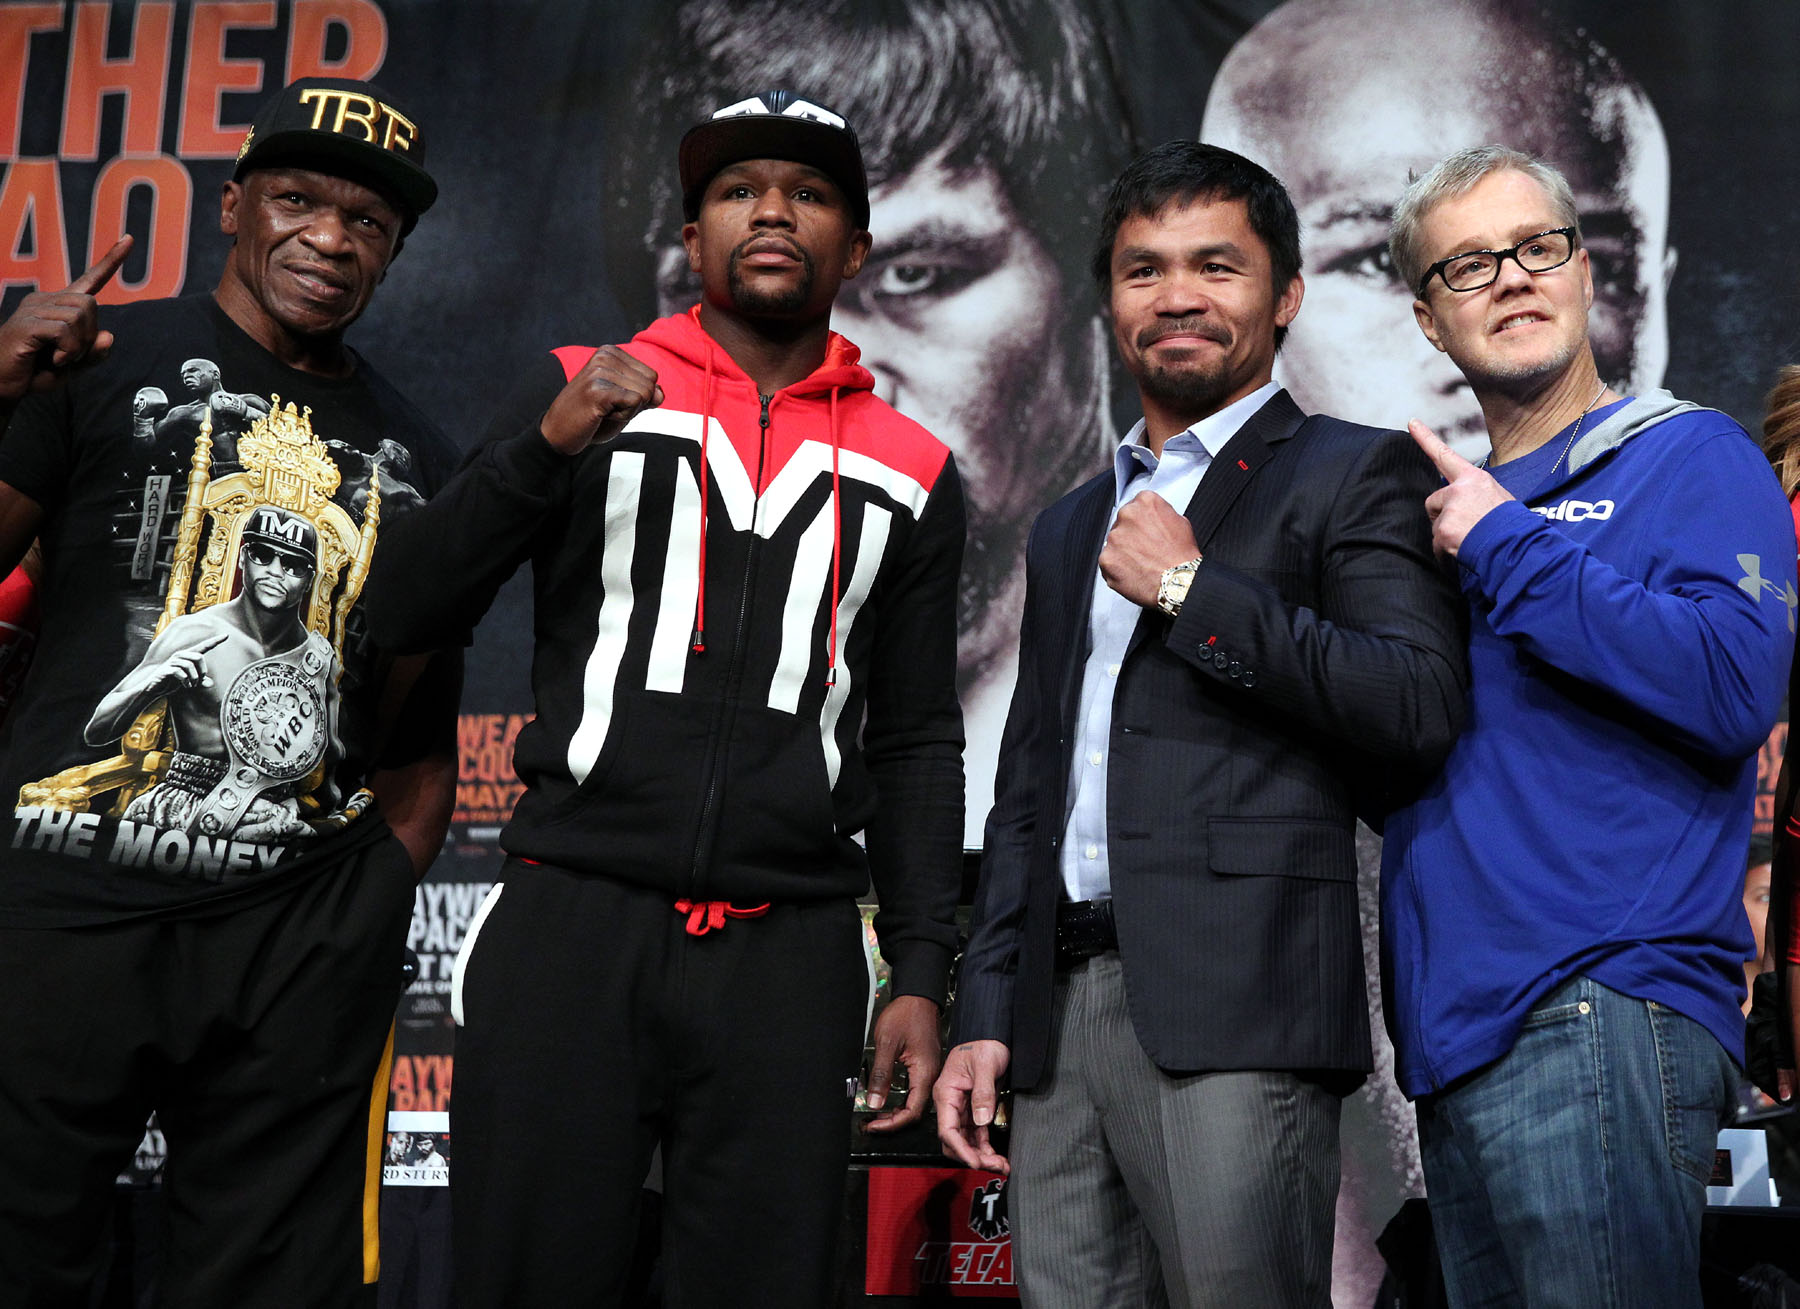 Manny Pacquiao and trainer Freddie Roach and  and Floyd Mayweather and dad Floyd Sr. attend the final press conference Wednesday for their upcoming historic 12-round welterweight world championship unification mega-fight.           ---   Photo Credit : Chris Farina - Top Rank